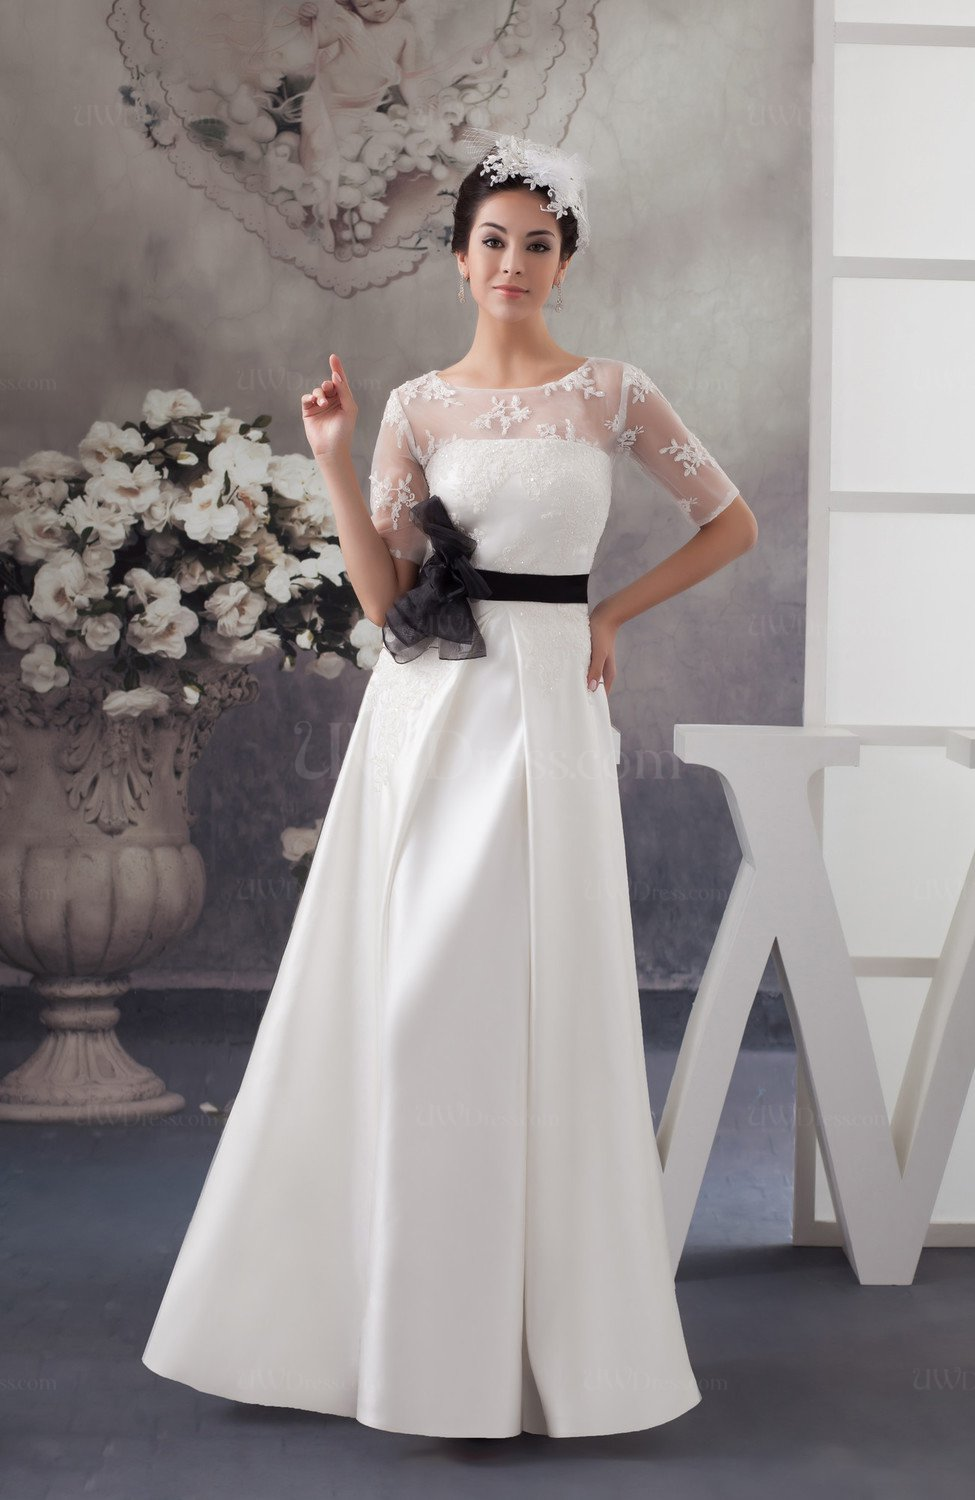 Lace bridesmaid dress with sleeves sheer summer chic for Summer wedding dresses with sleeves